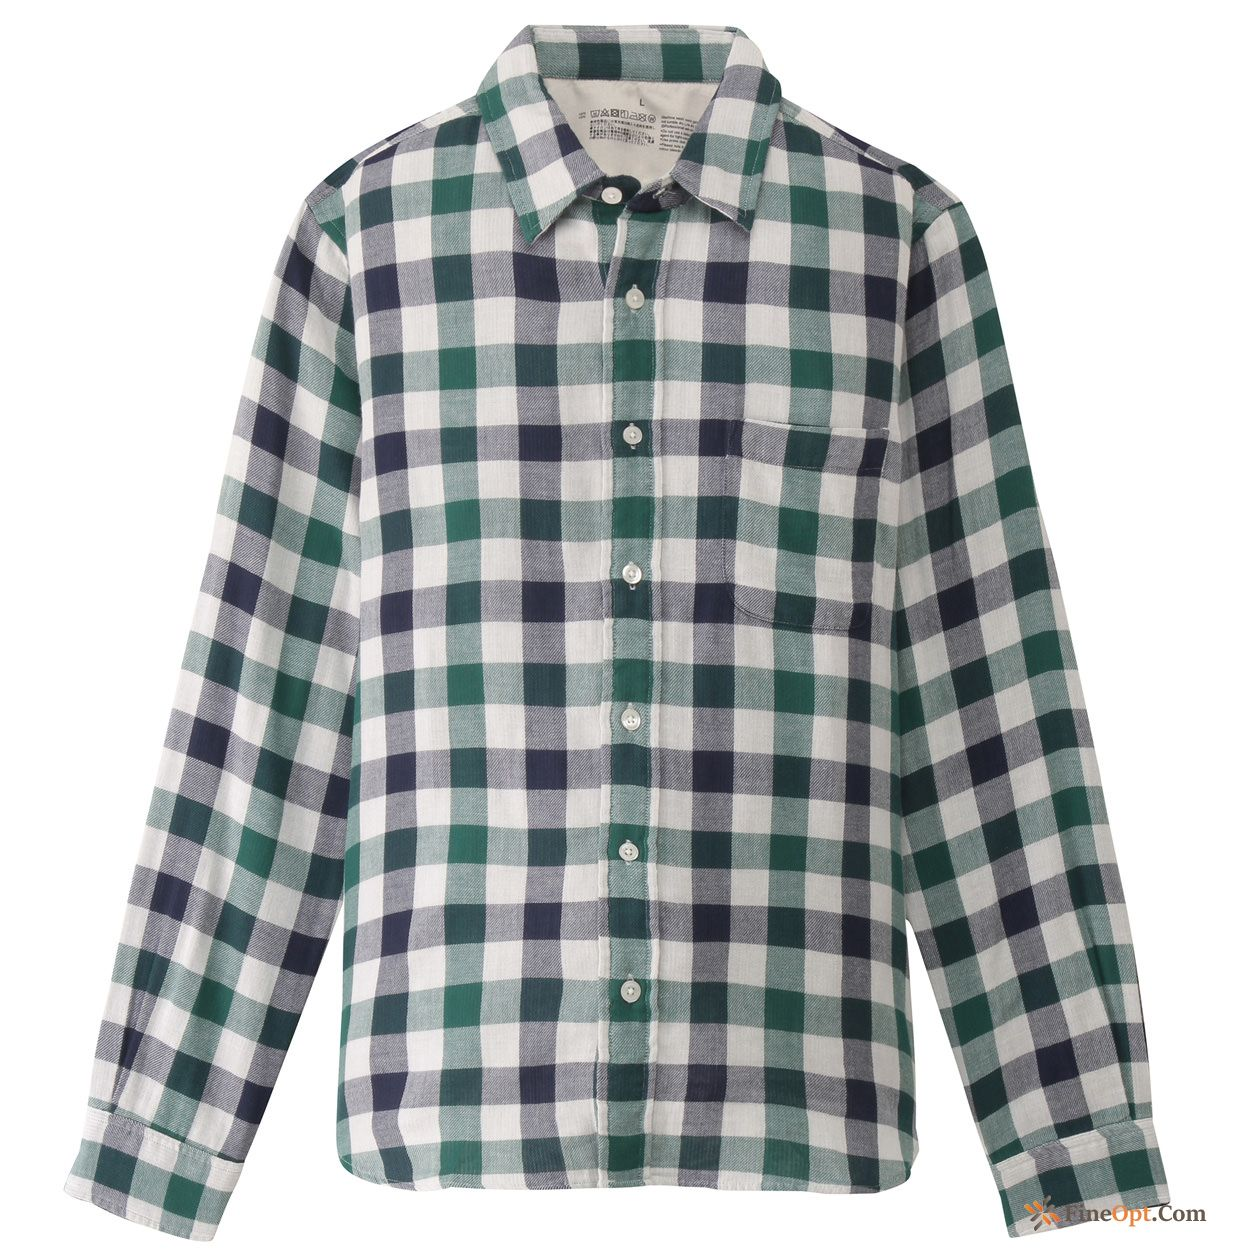 Printing Yarn Cotton Checks Men's Double Layer Shirt Shirts For Sale